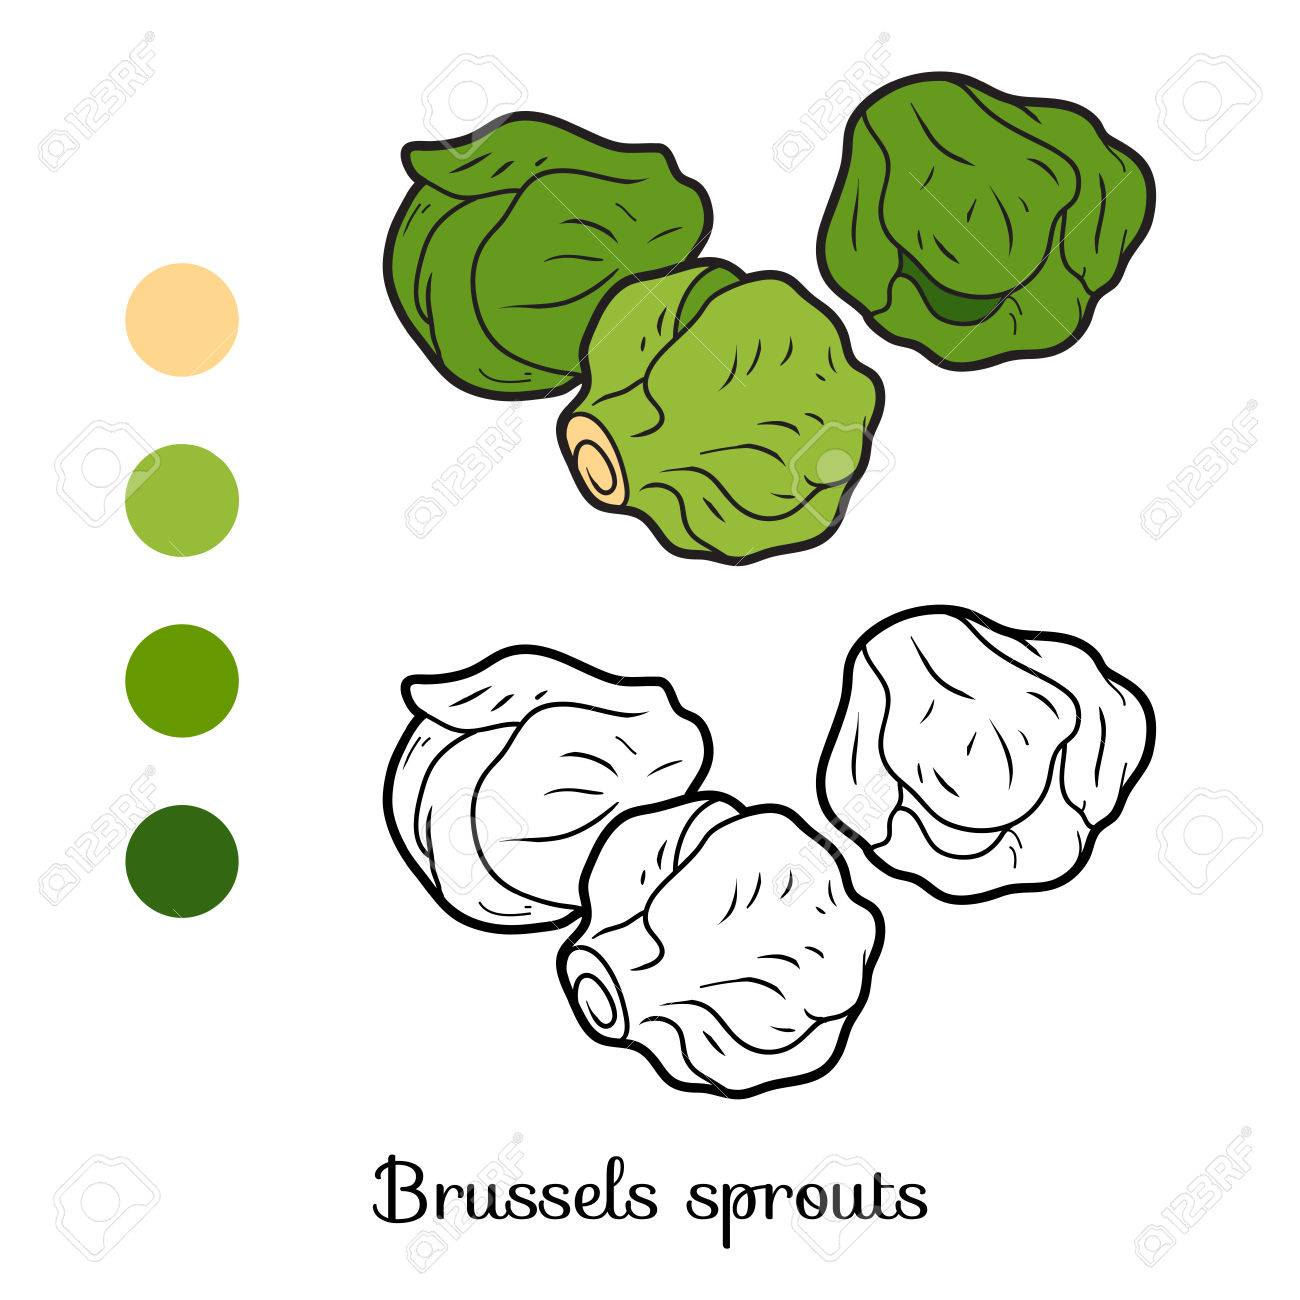 Coloring Book For Children, Vegetables, Brussels Sprouts Royalty ...